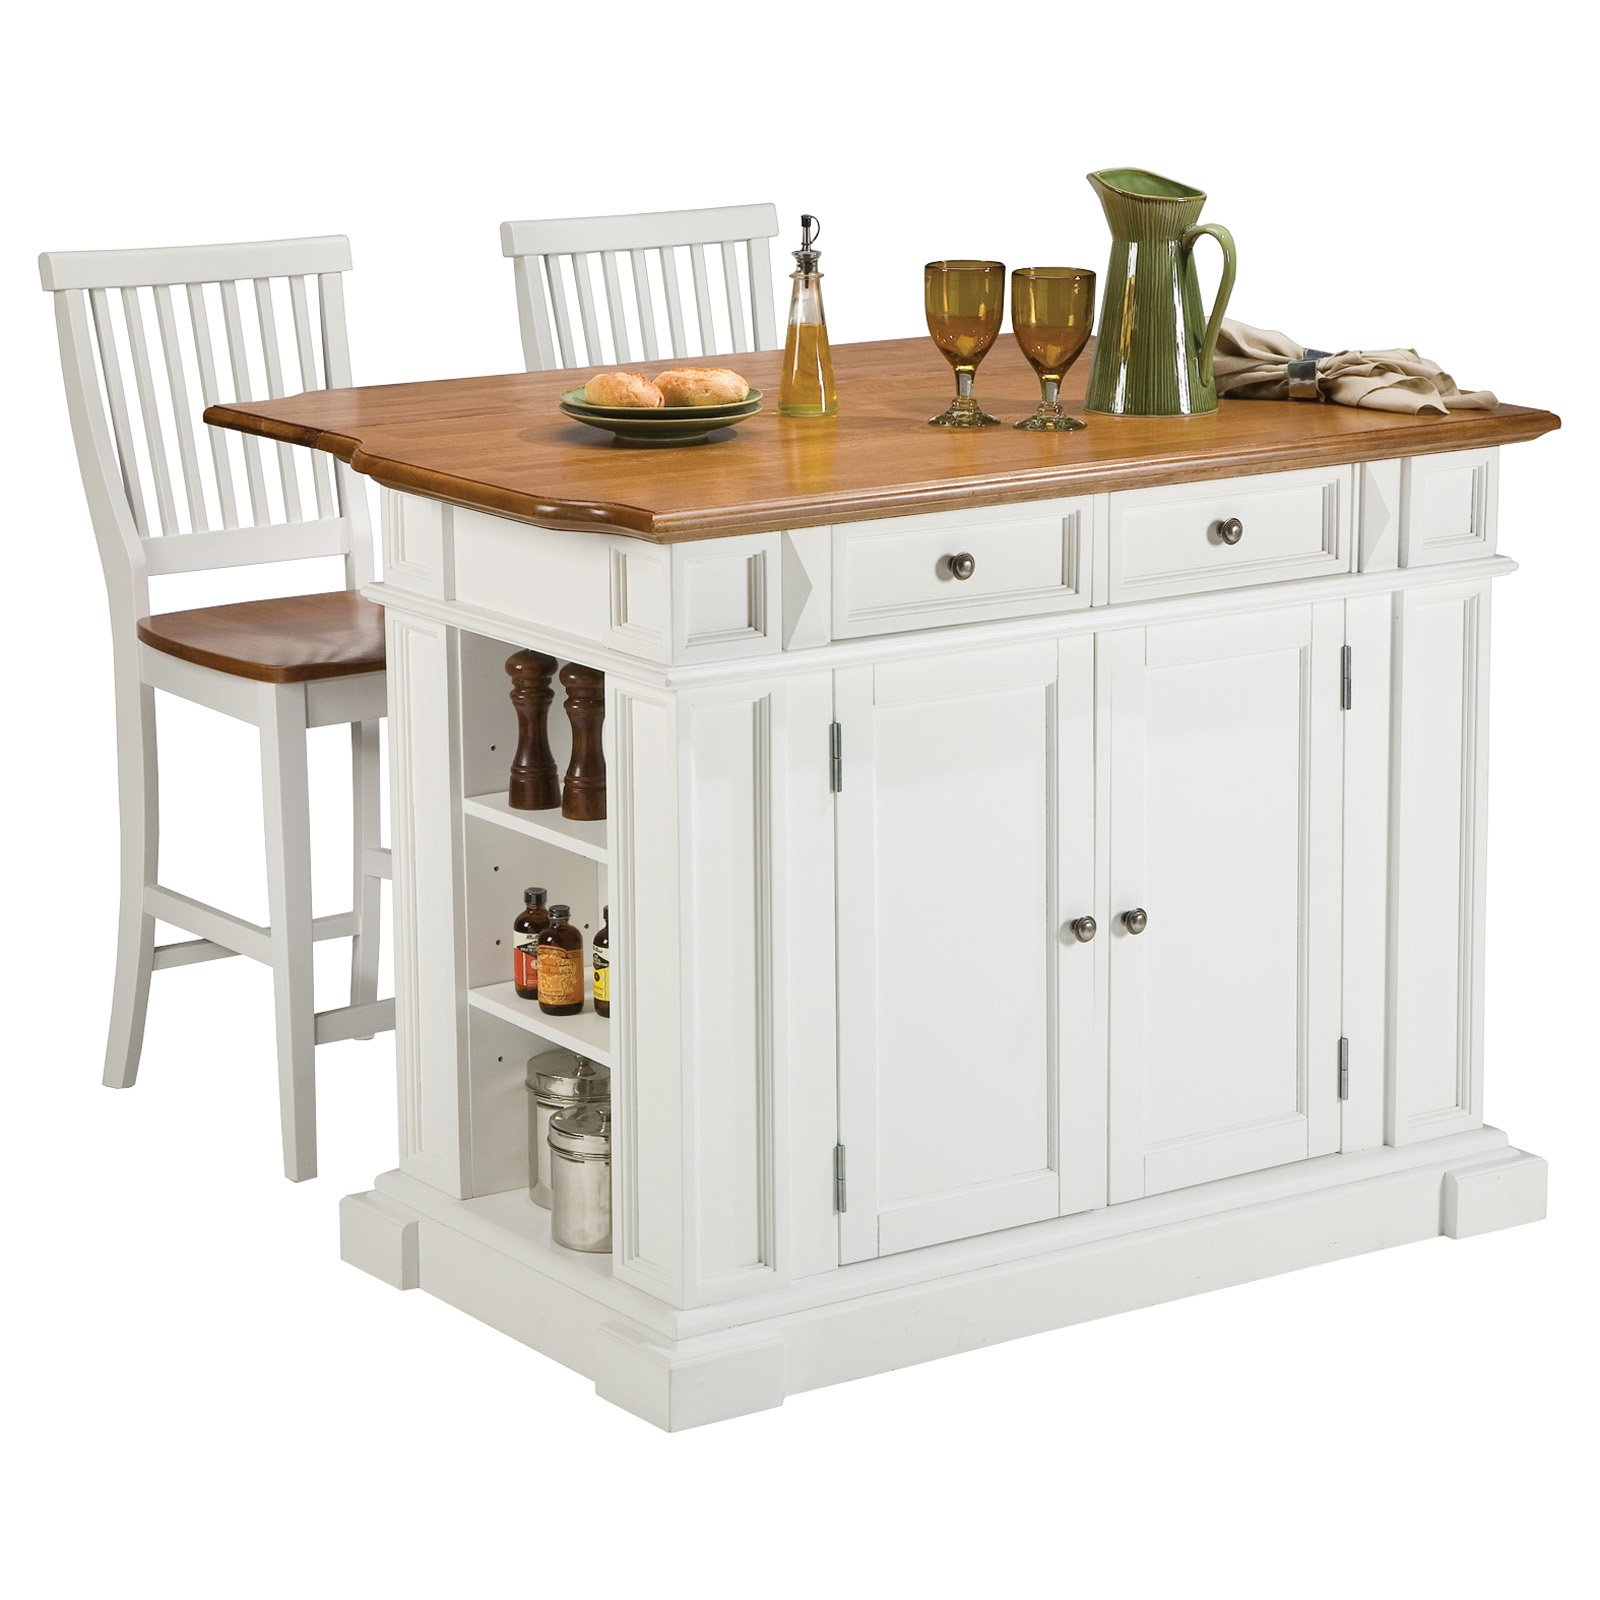 small kitchen island with stools photo - 1